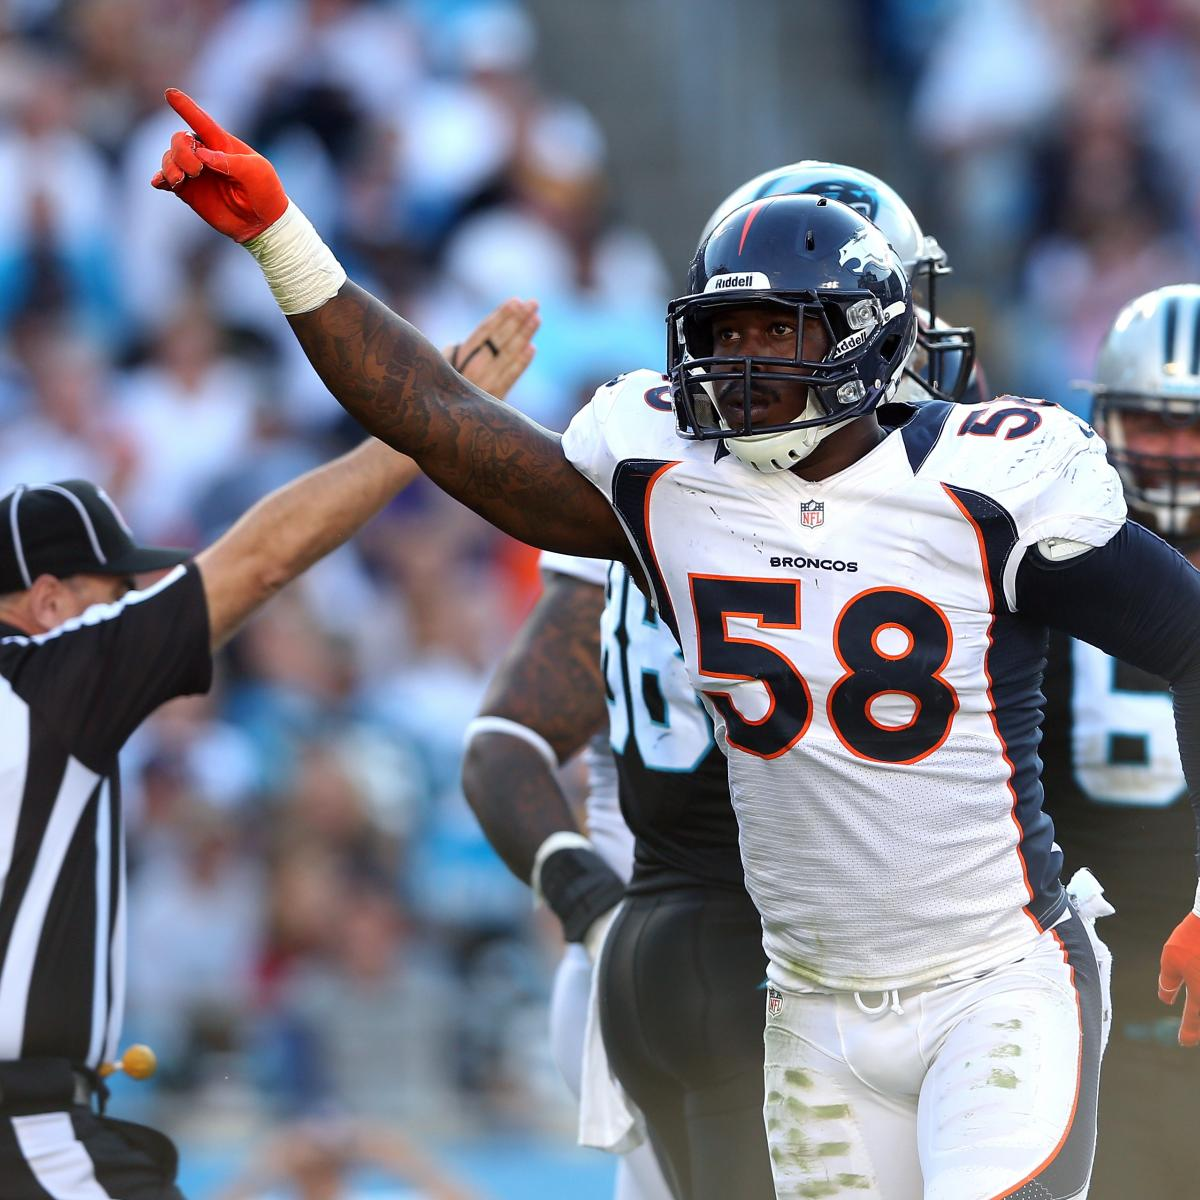 Former Broncos Player Arrested: NFL Players Already Suspended To Start 2013-14 Season